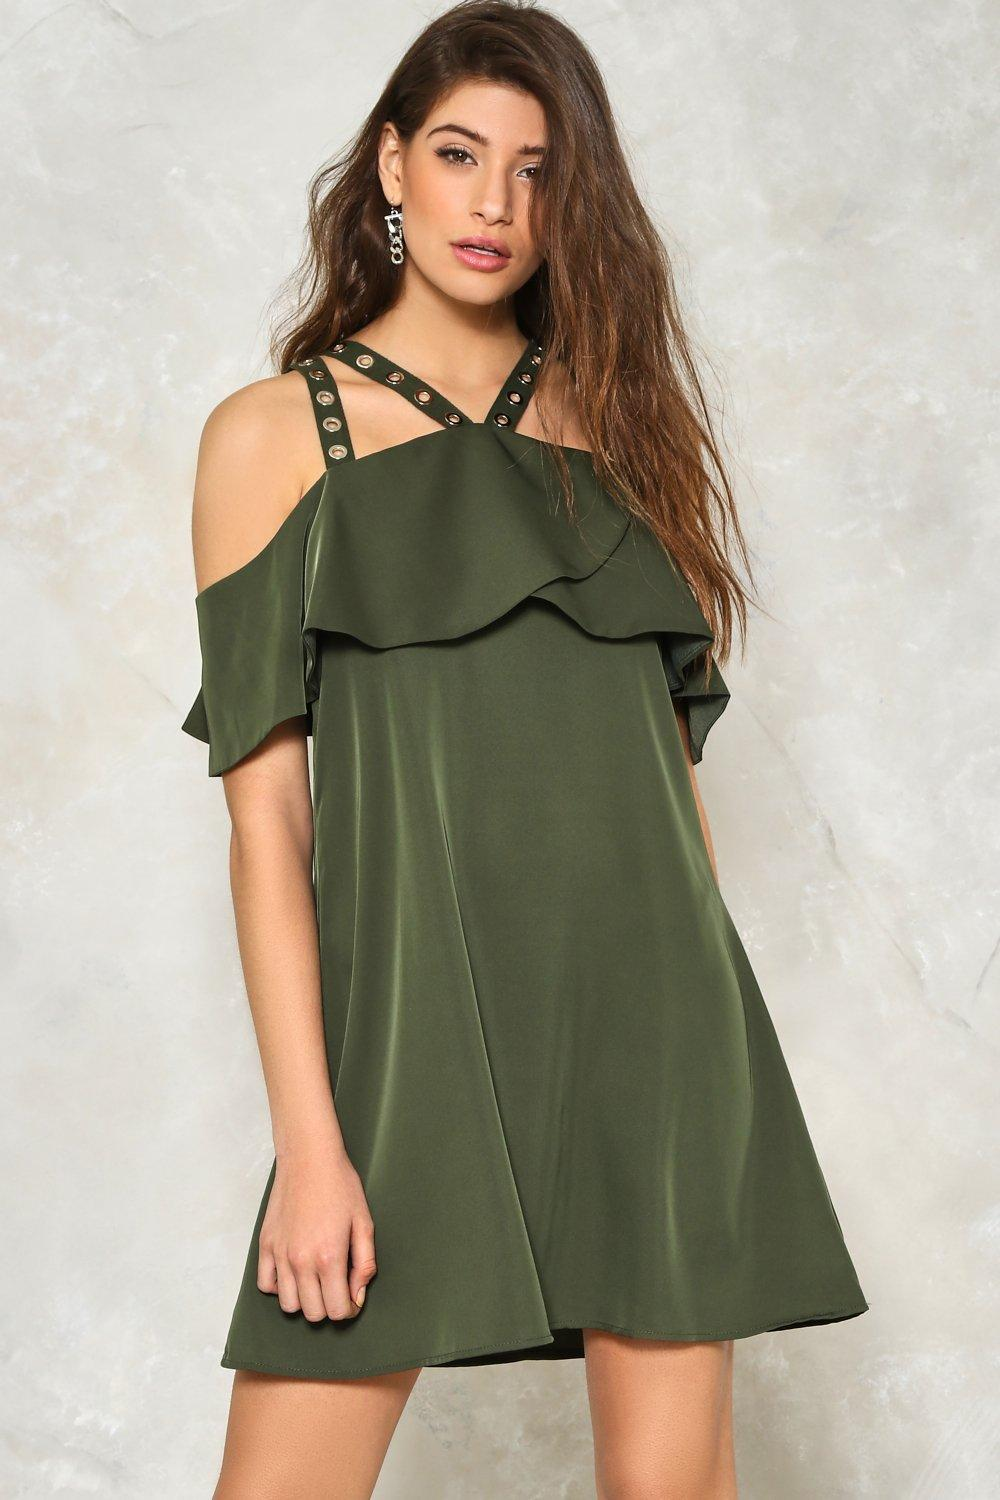 Shoulder Strap Dress